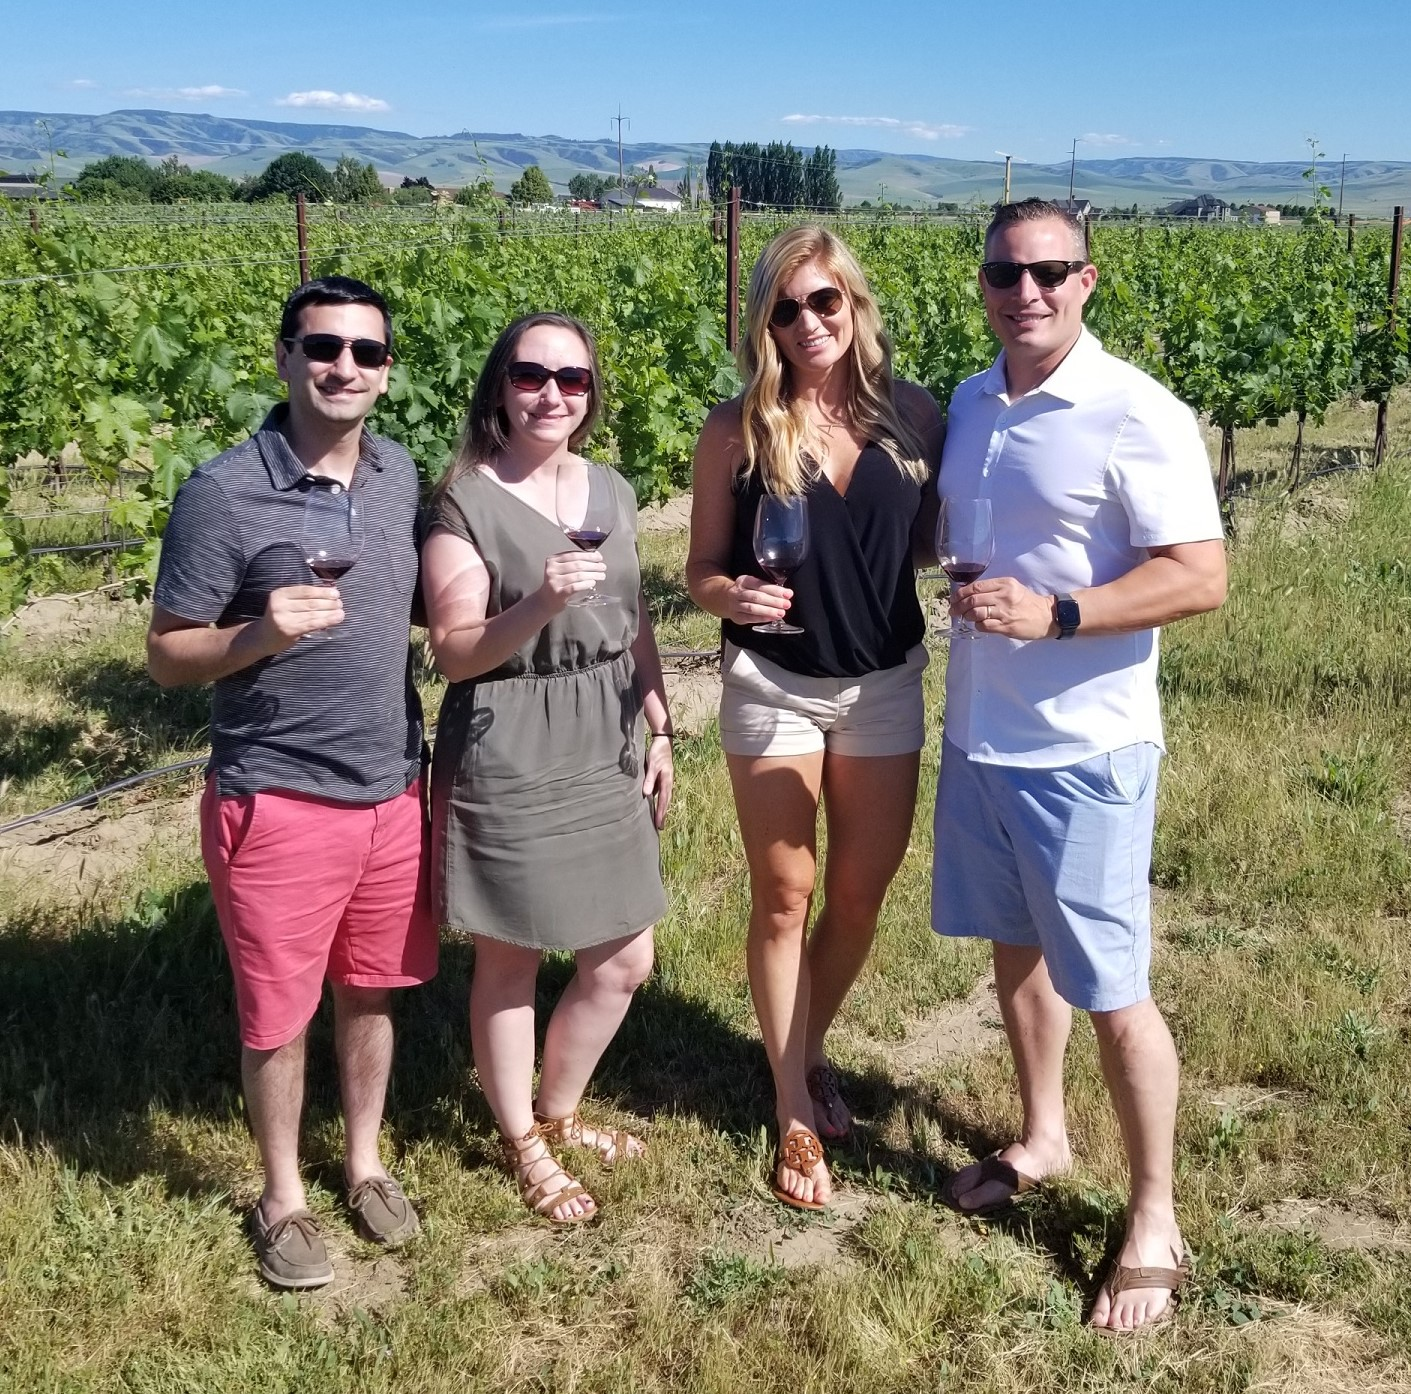 Group wine tasting in vineyard in Walla Walla